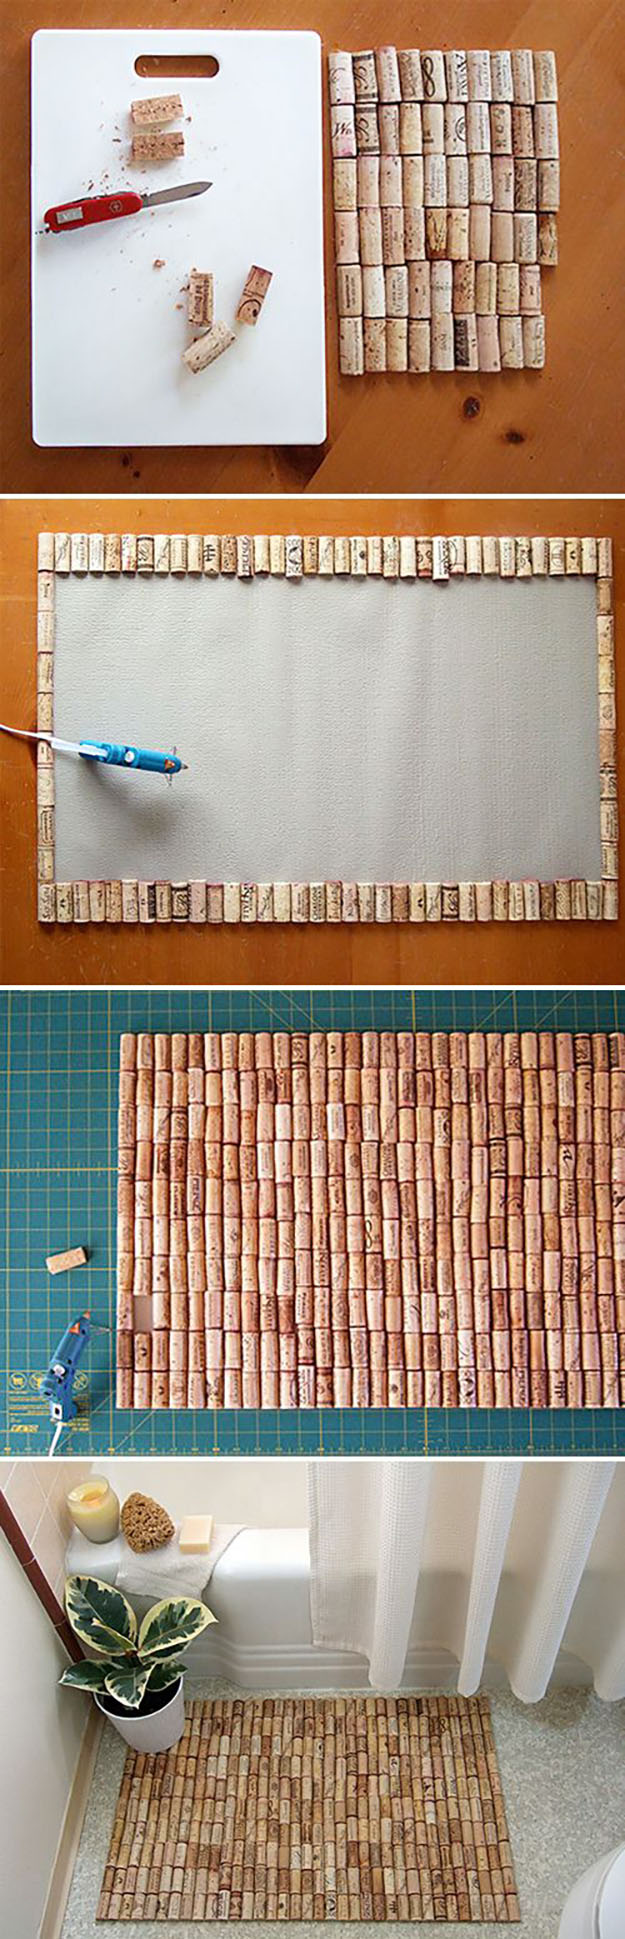 Easy Wine Cork Craft Ideas for the Home - DIY Wine Cork Bathmat - DIY Projects & Crafts by DIY JOY at http://diyjoy.com/diy-wine-cork-crafts-craft-ideas